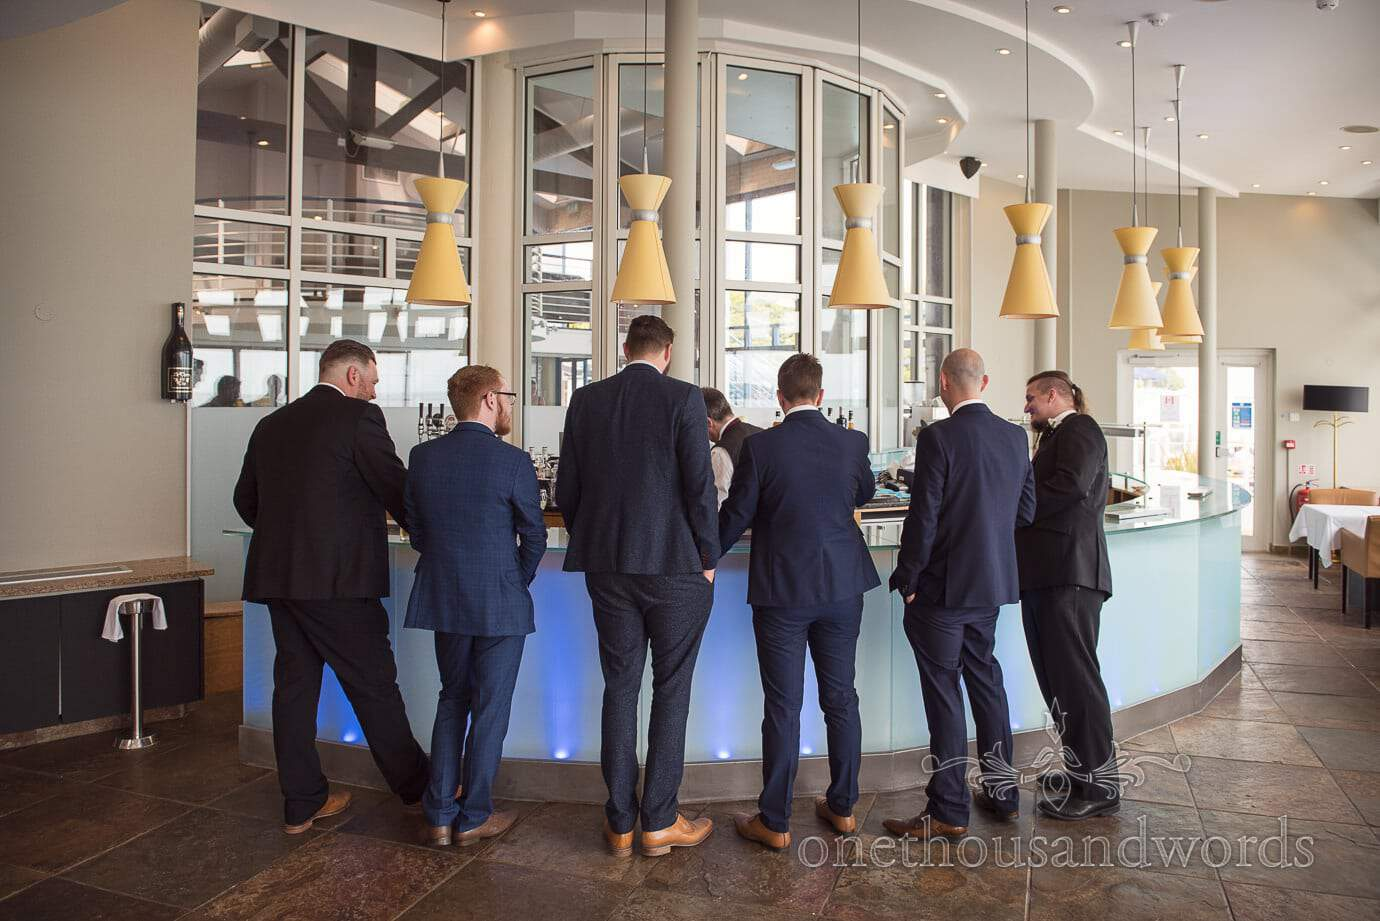 Wedding guests in black and blue suits at designer bar in Haven Hotel wedding venue